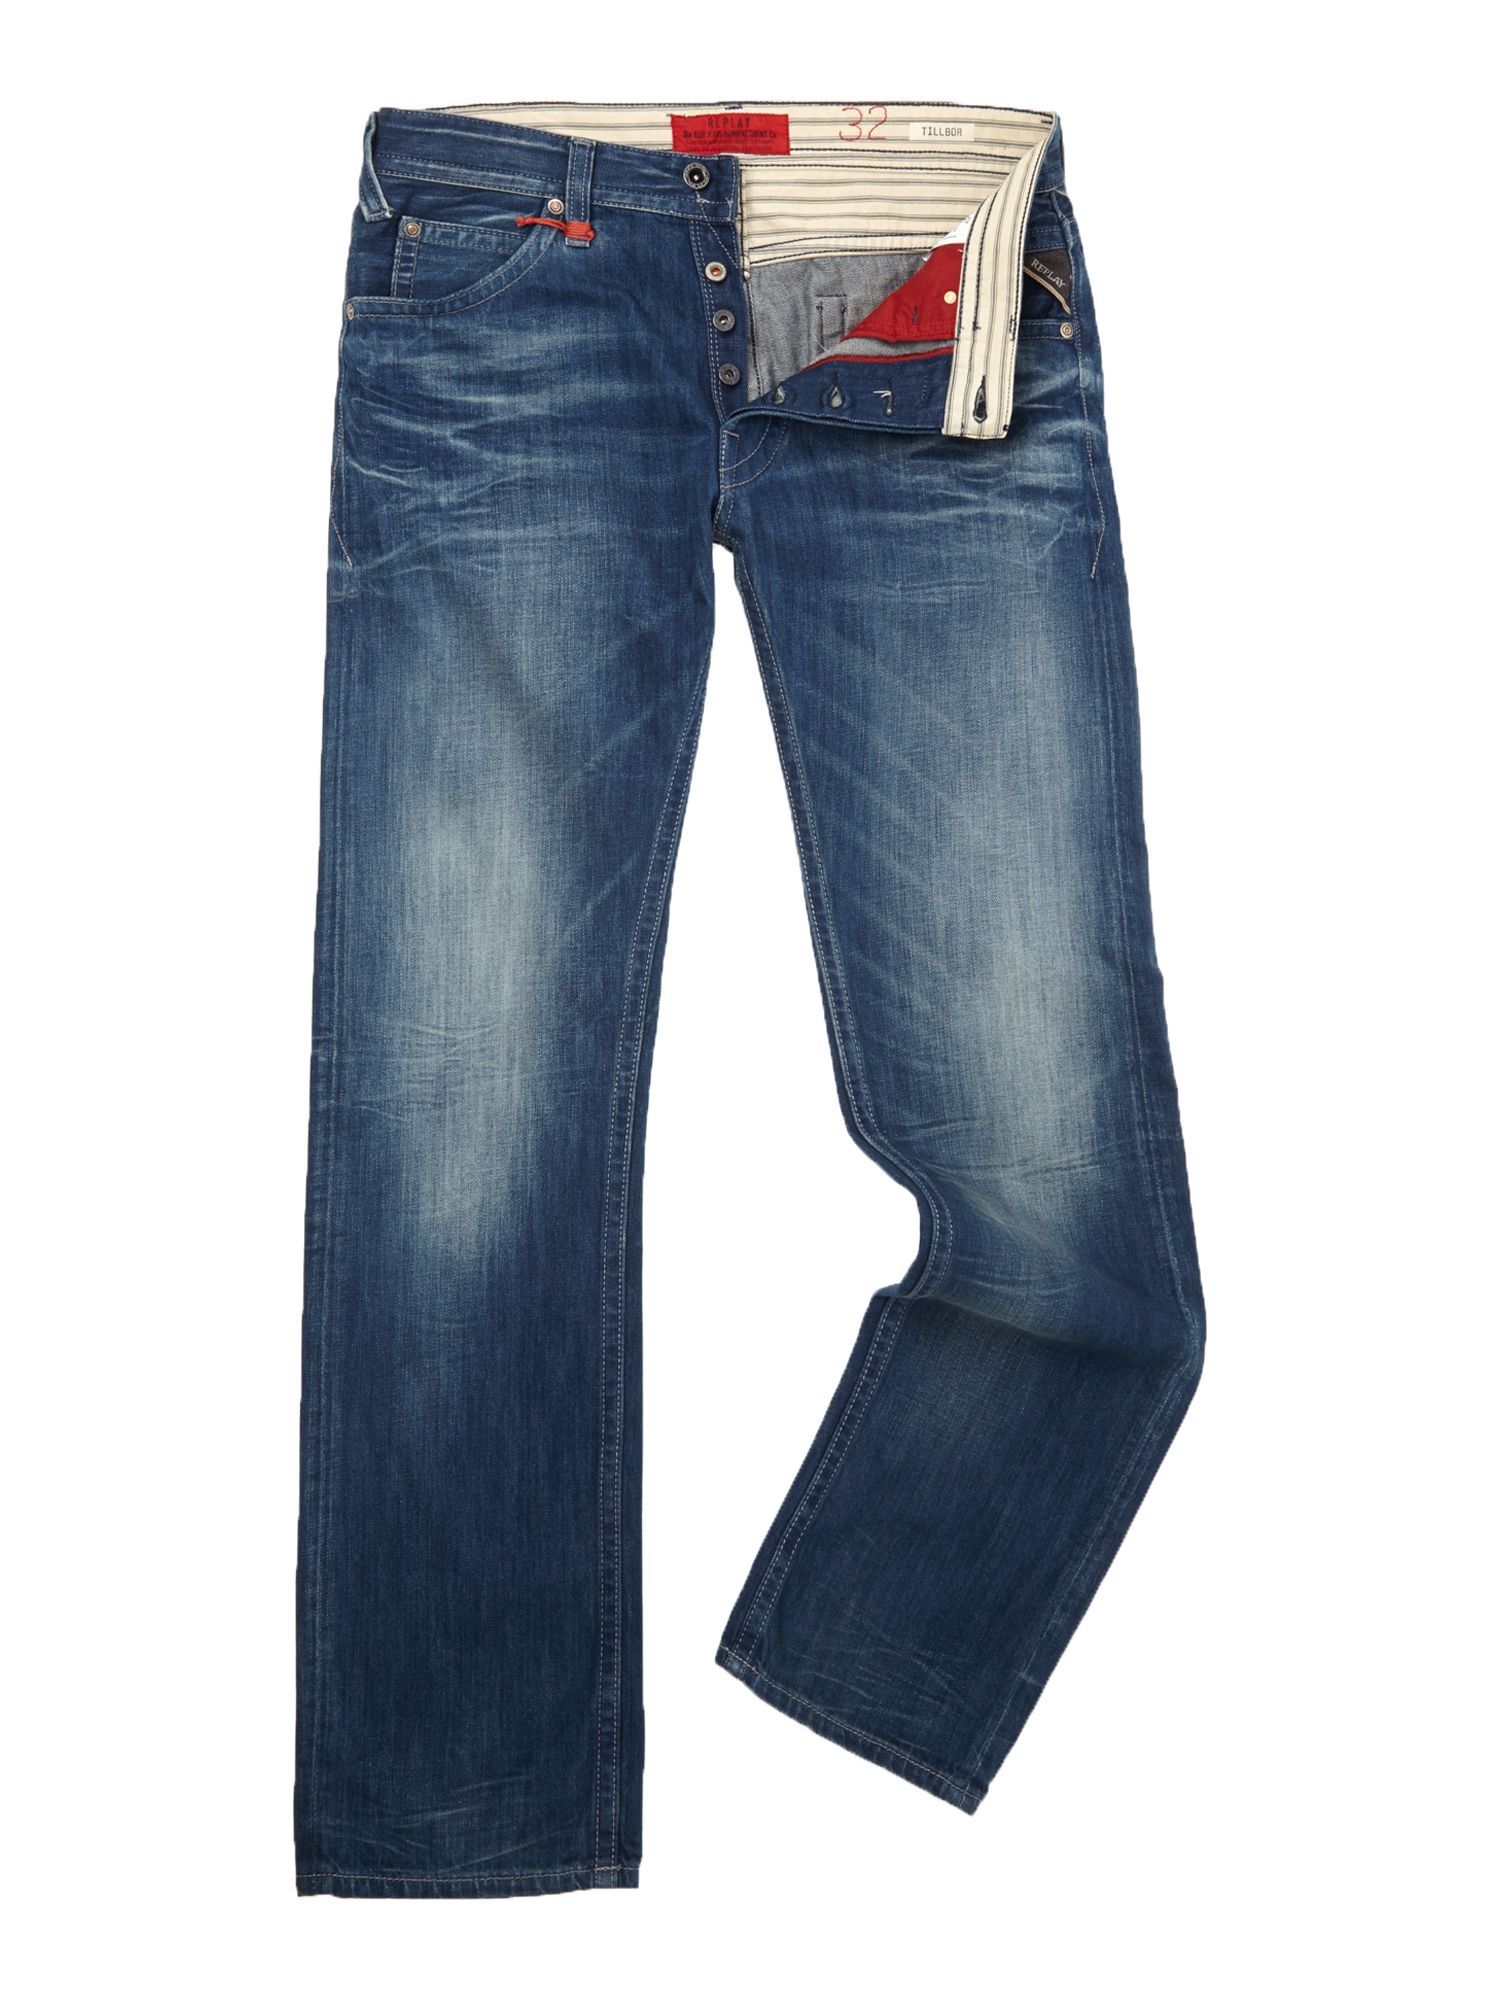 Tillbor soccer fit denim jeans